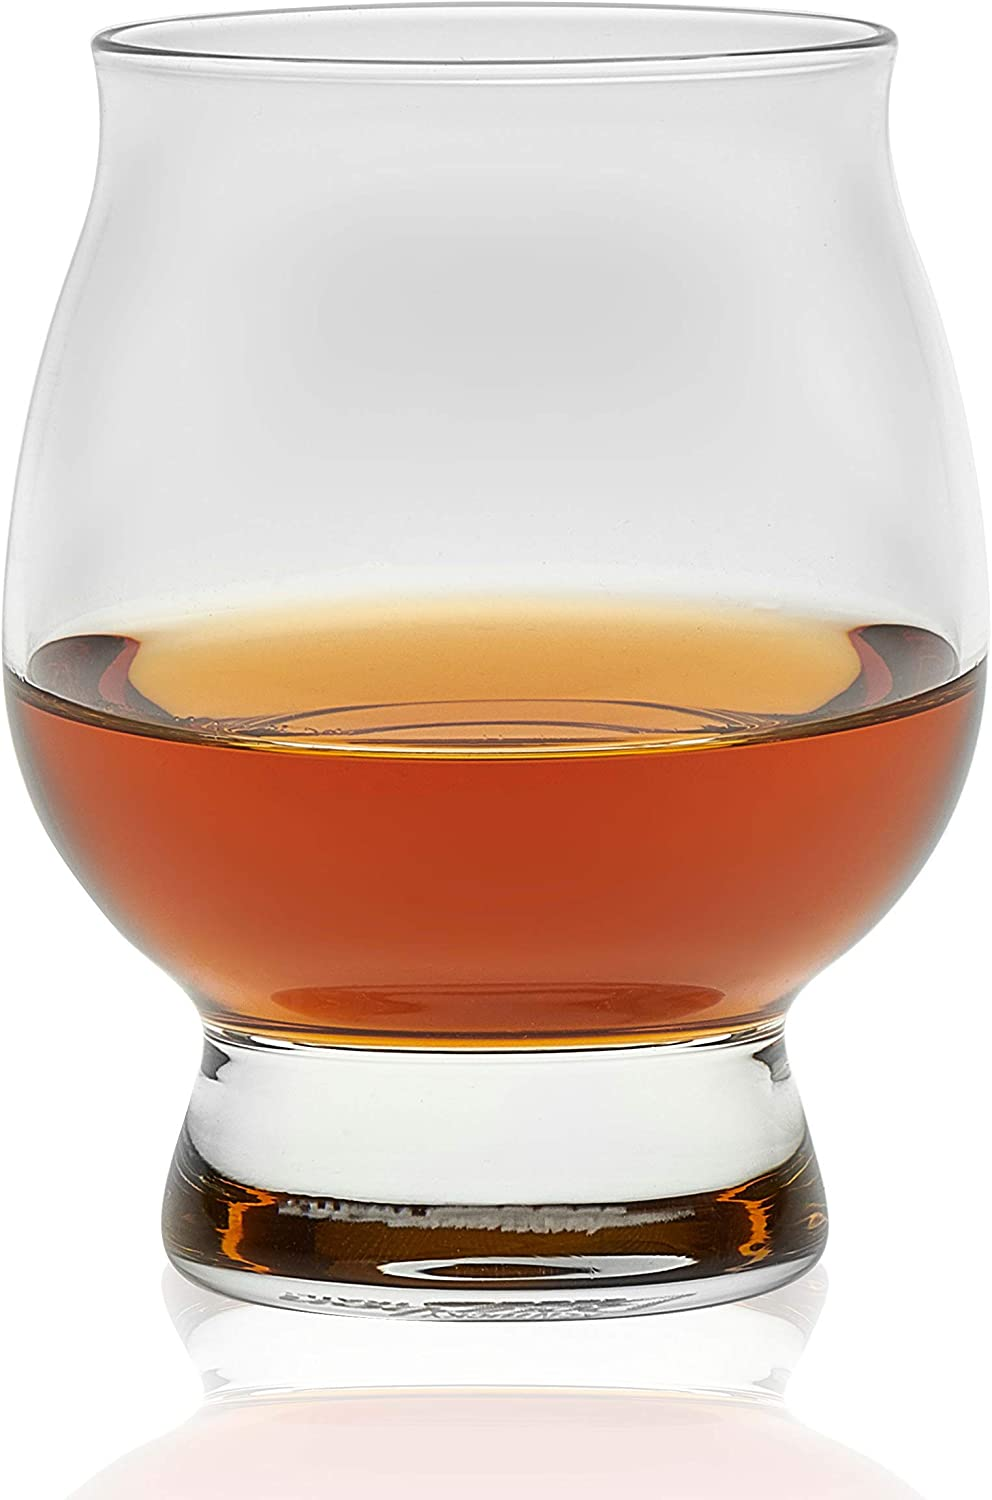 Libbey Signature Kentucky Bourbon Trail Whiskey Glasses, Set of 4